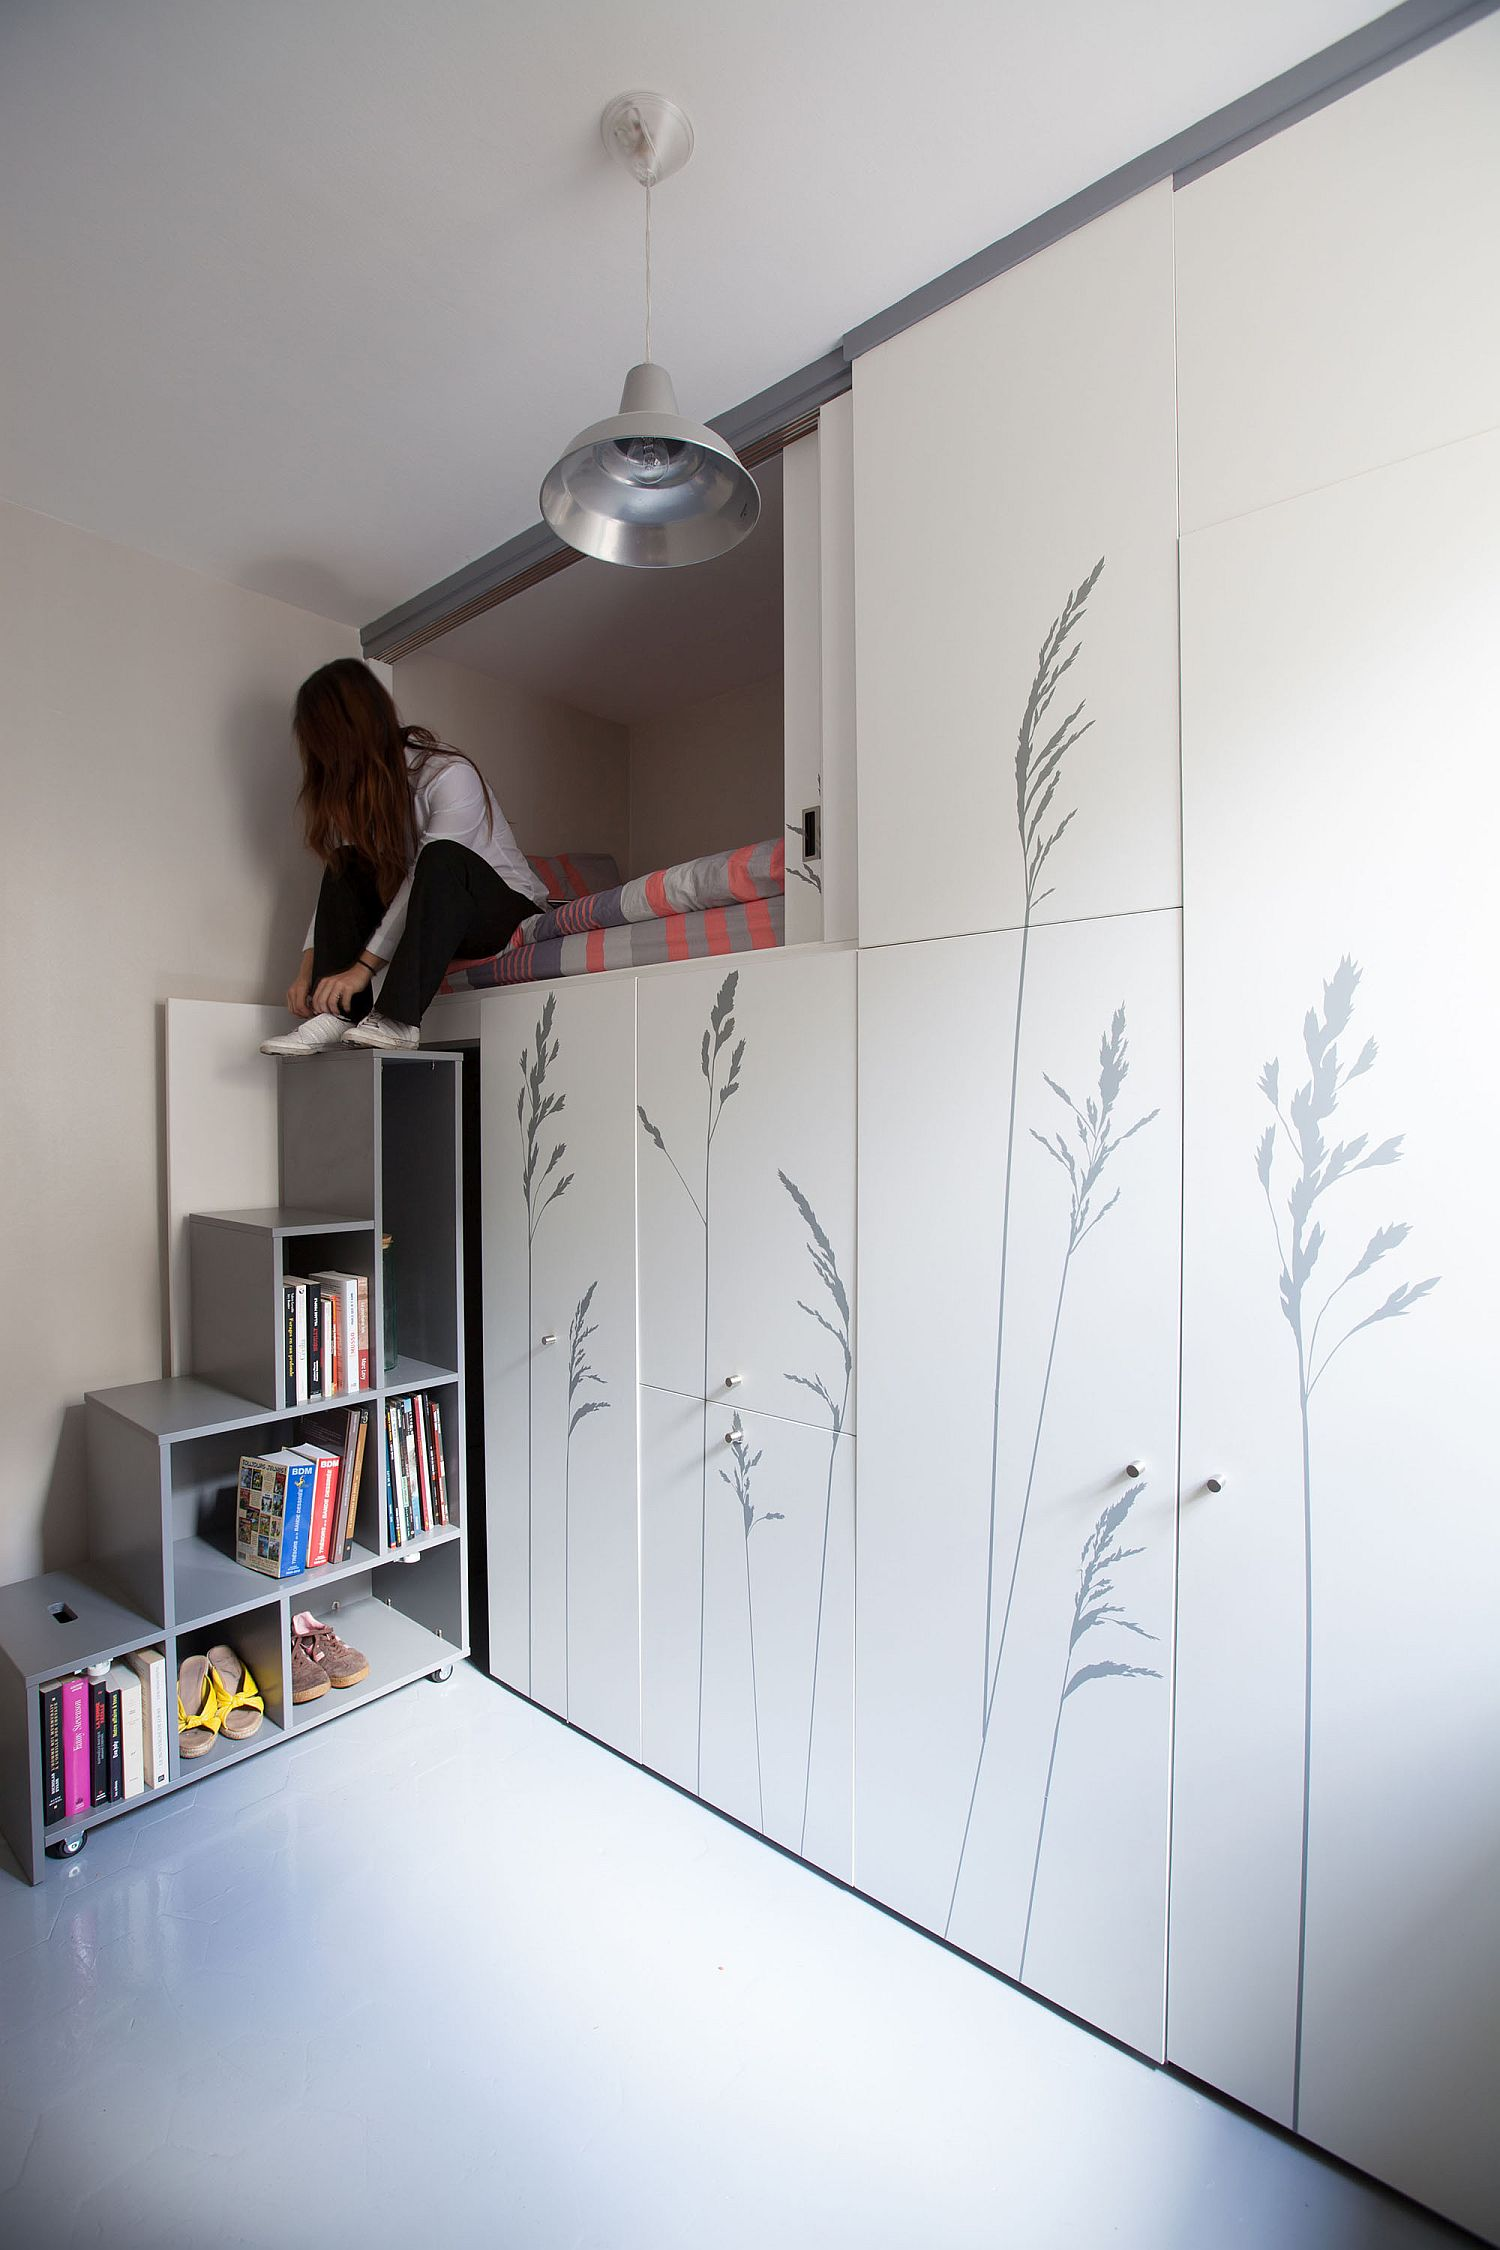 Super-tiny studio apartment with multi-functional wall unit that is just 8 square meters in size